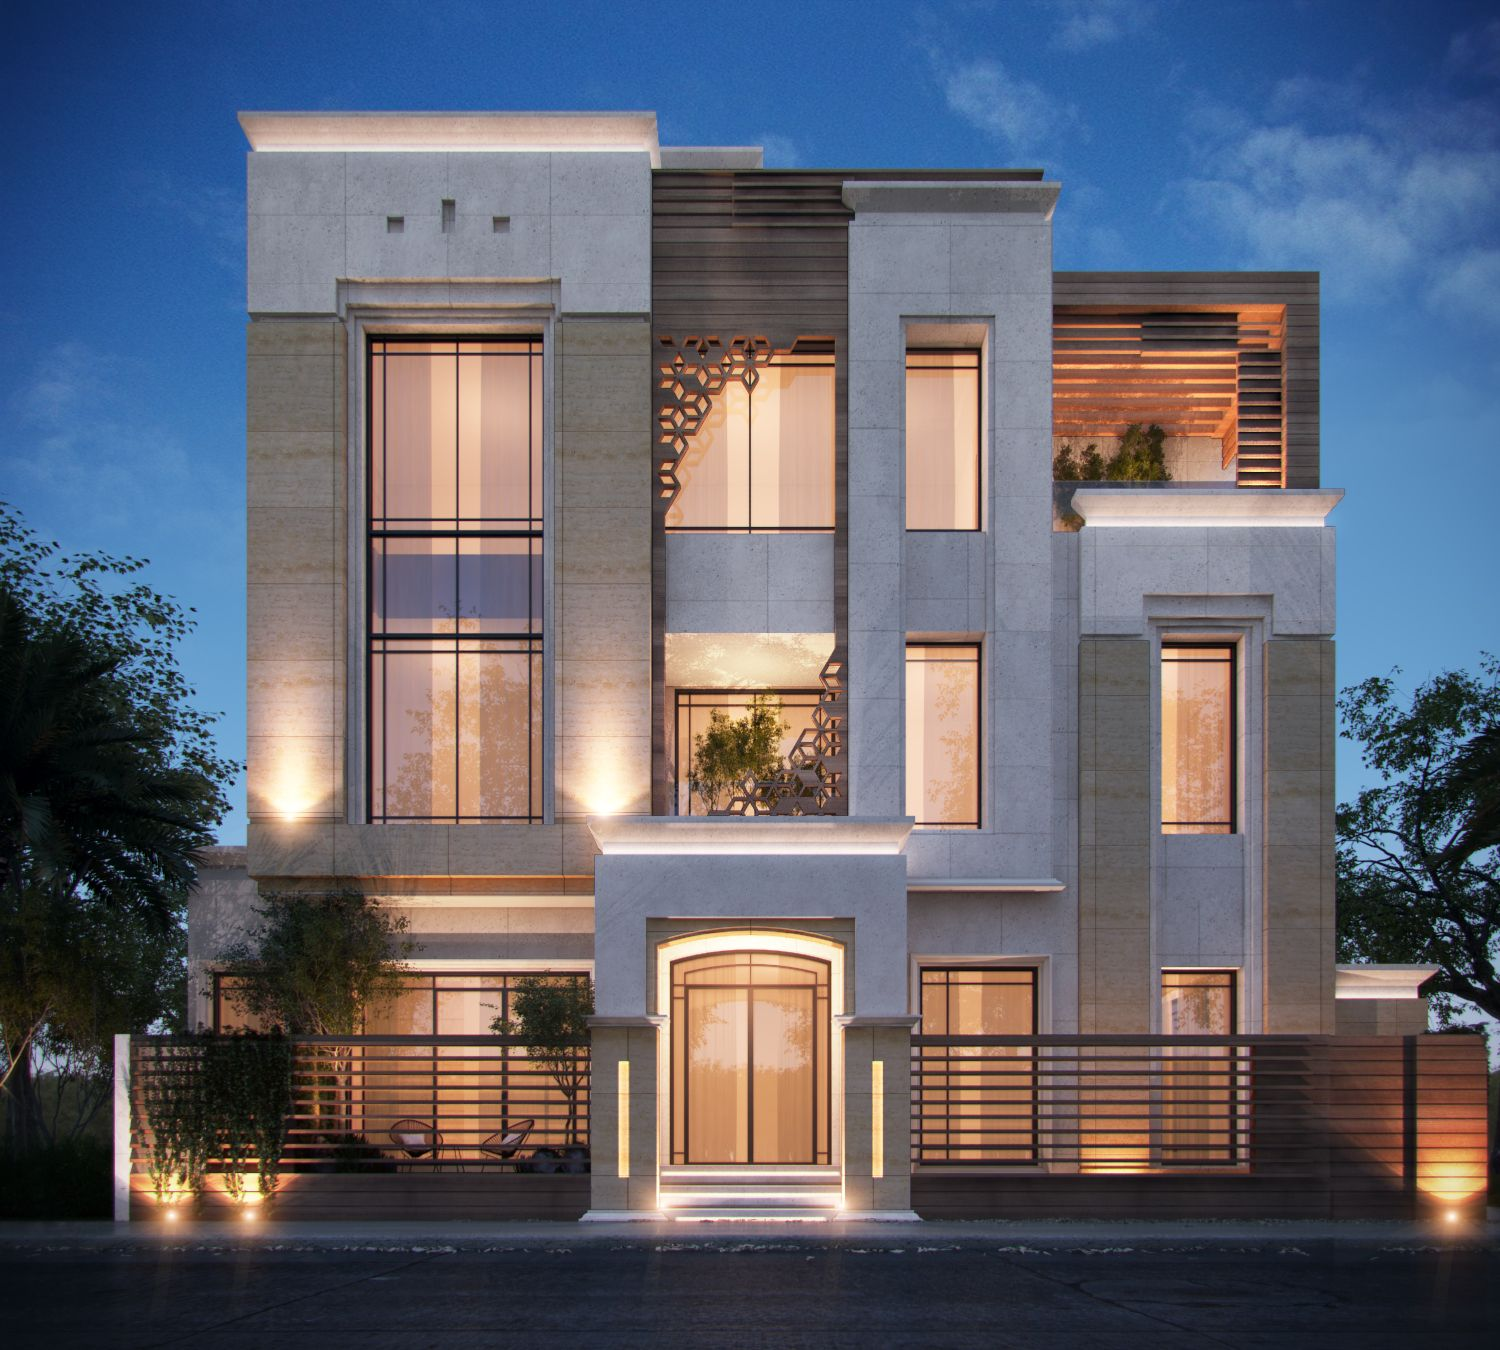 375 M Private Villa Kuwait Sarah Sadeq Architects Sarah